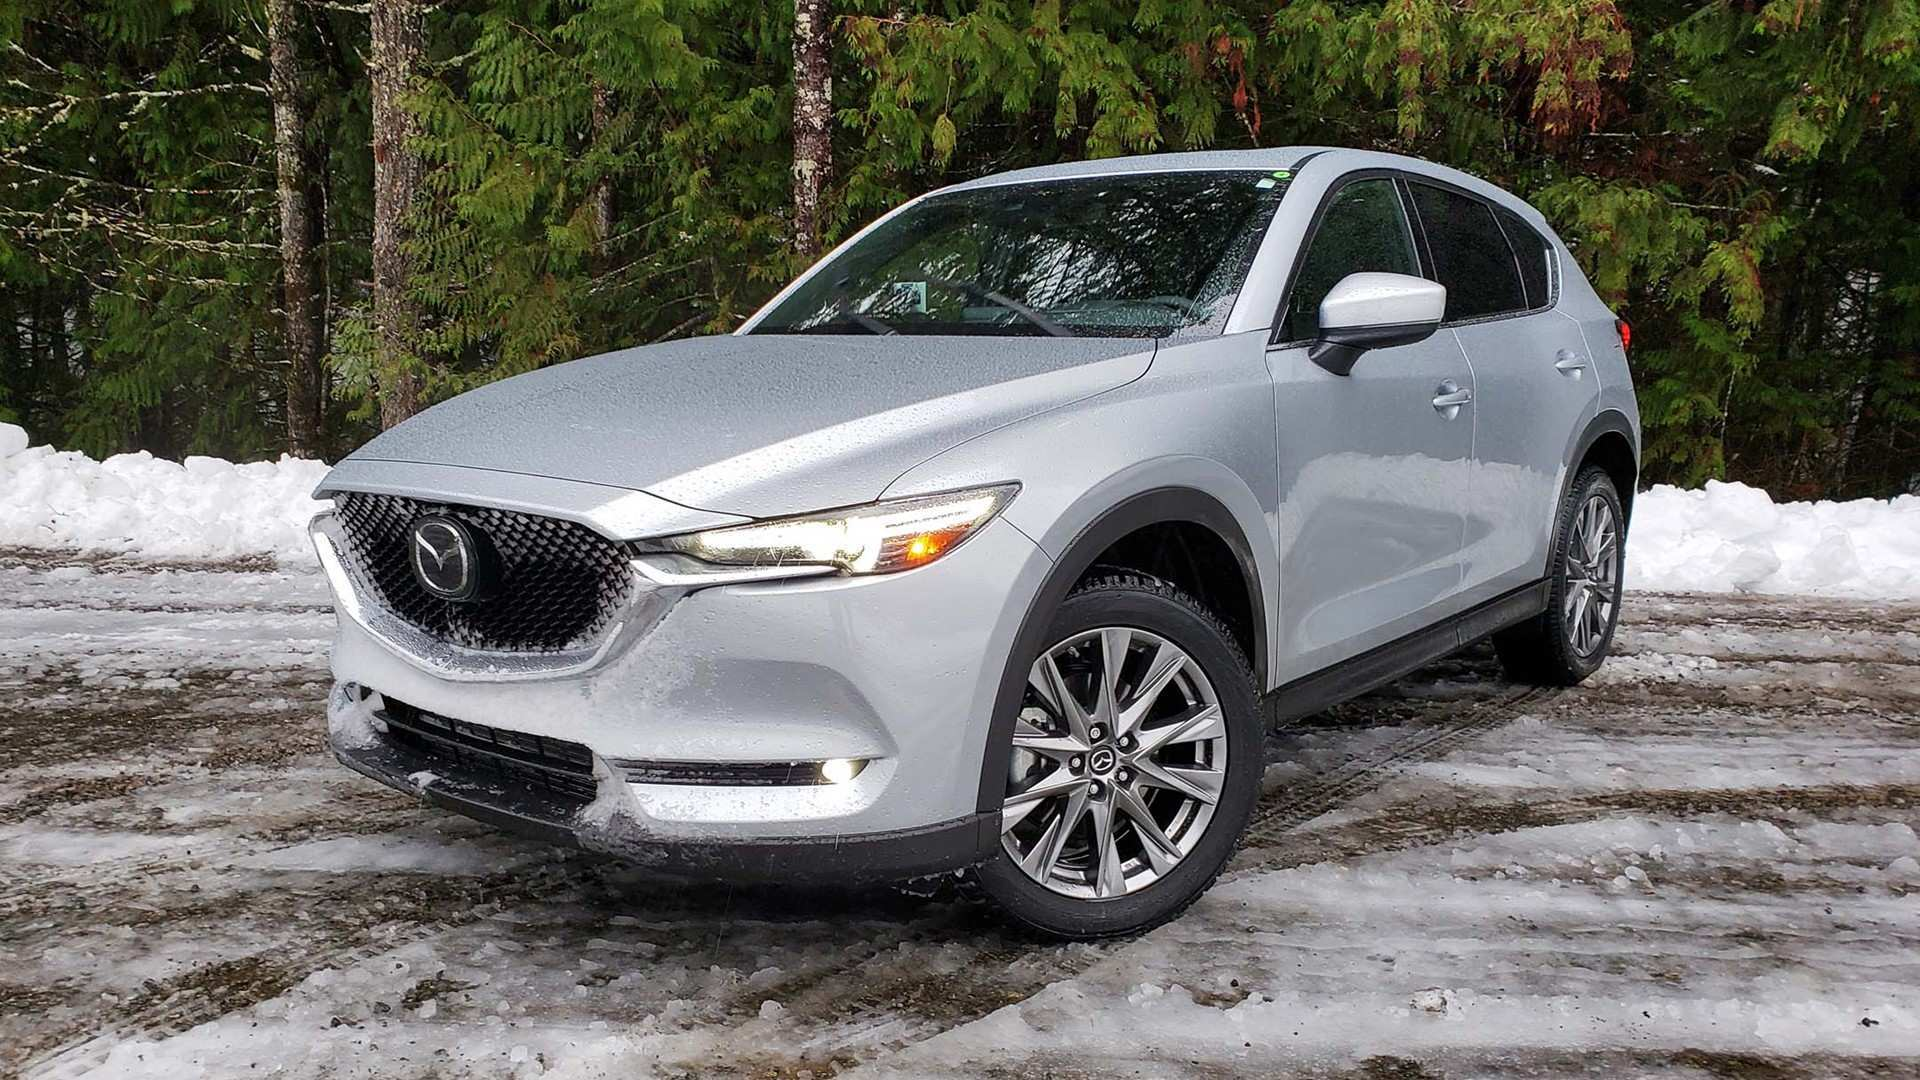 60 The Best Mazda Cx 5 2019 Vs 2020 Pricing